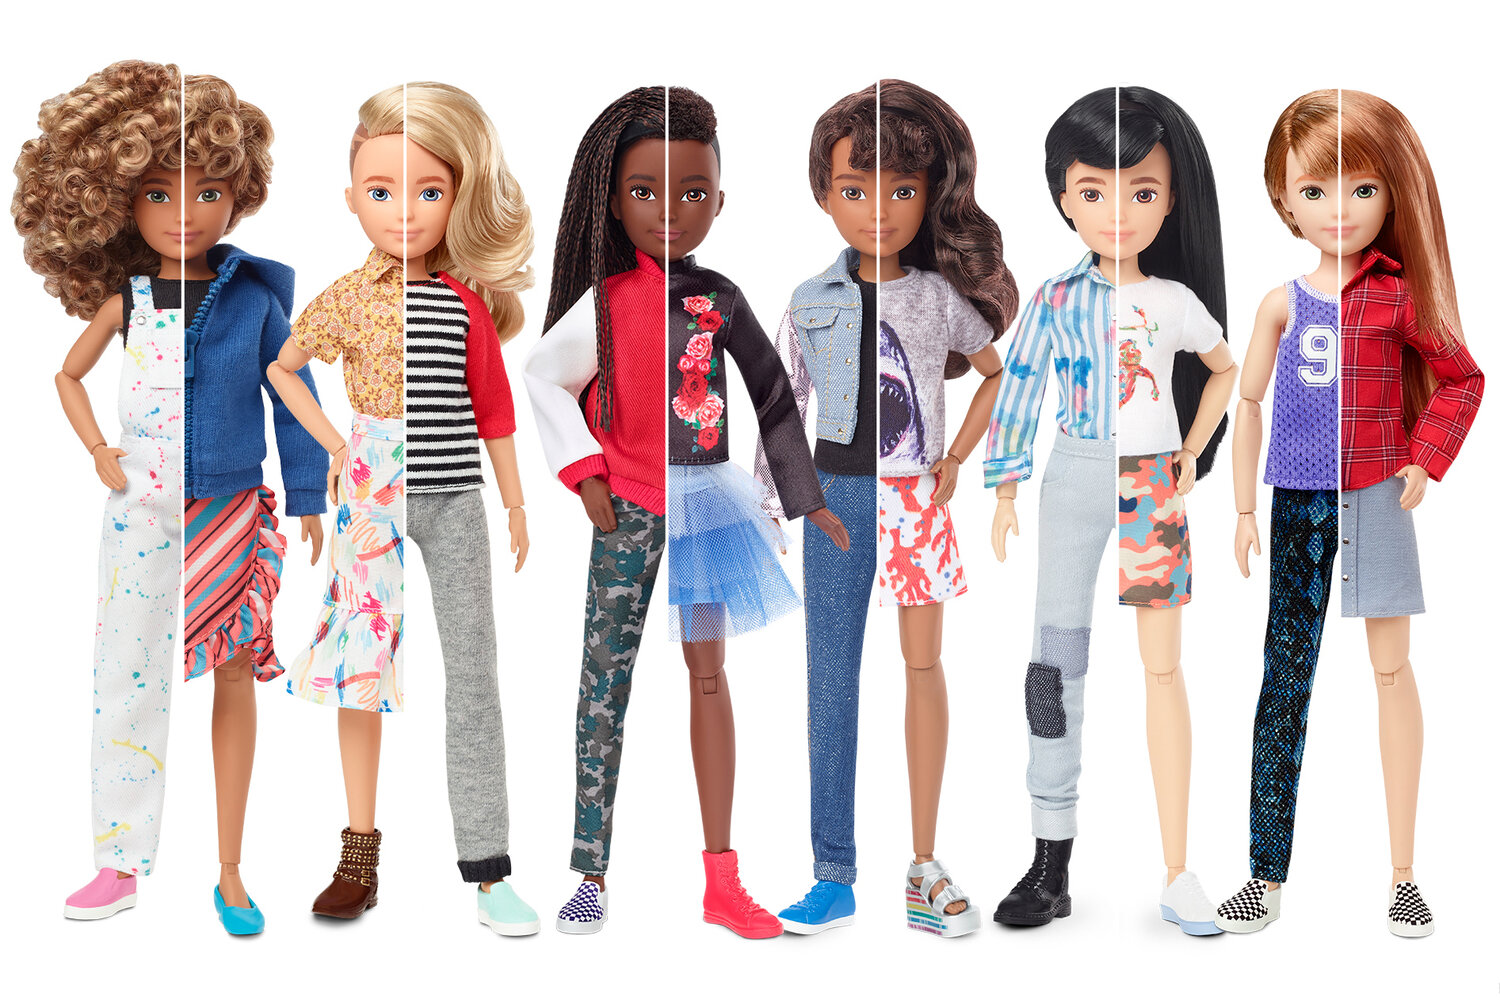 [Image Description: Six dolls that are each split down the middle. The right of each doll is a more feminine expression with long hair and the left of each doll is a more masculine expression with short hair. The doll to the far left has caramel skin and curly light brown hair. The second doll from the left has light skin and straight blonde hair. The third doll from the left has dark brown skin and dark brown hair. The third doll form the right had light brown skin and dark drown curly hair. The second doll form the right has light skin and straight black hair. The doll to the far right has light skin and straight auburn hair.]